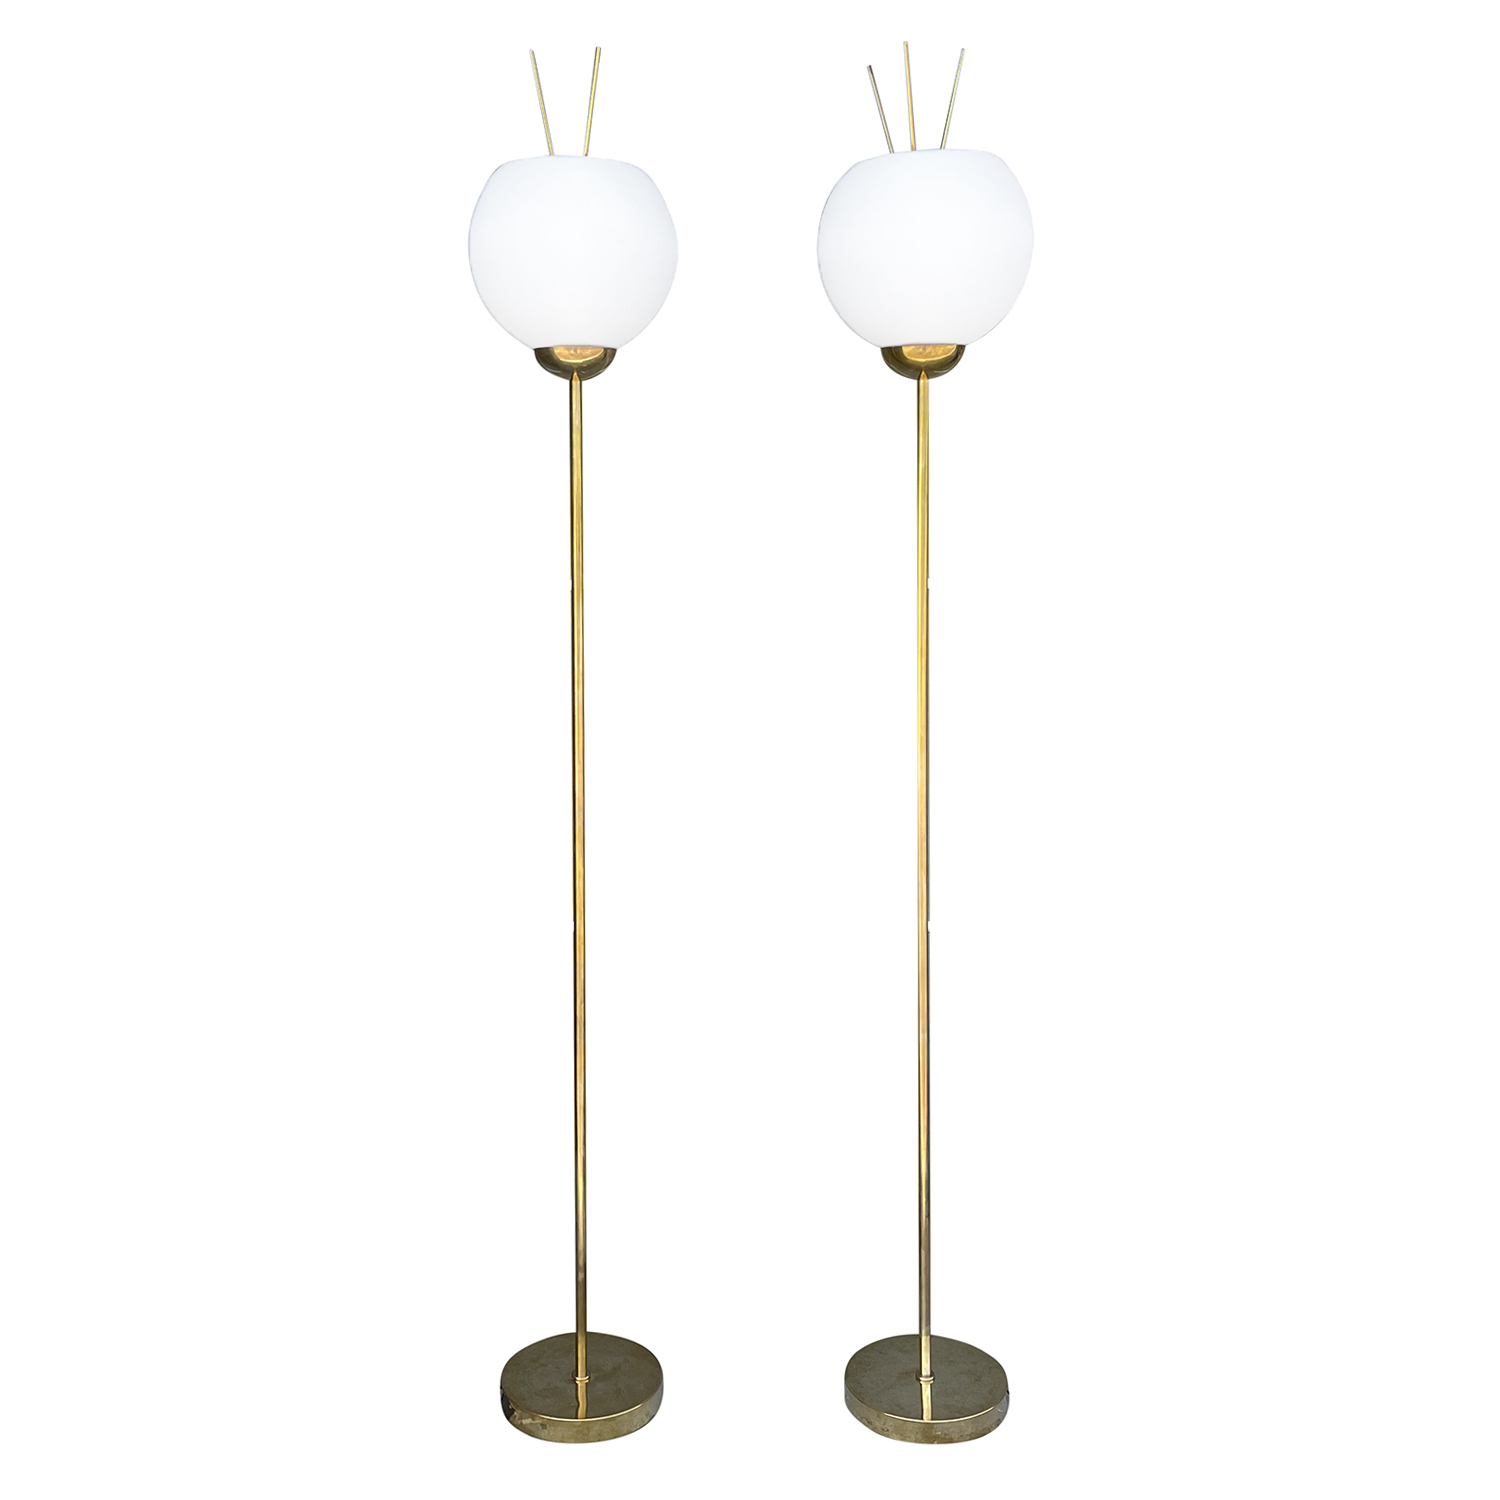 20th Century Gold Italian Pair of Brass, Frosted Opaline Glass Floor Lamps